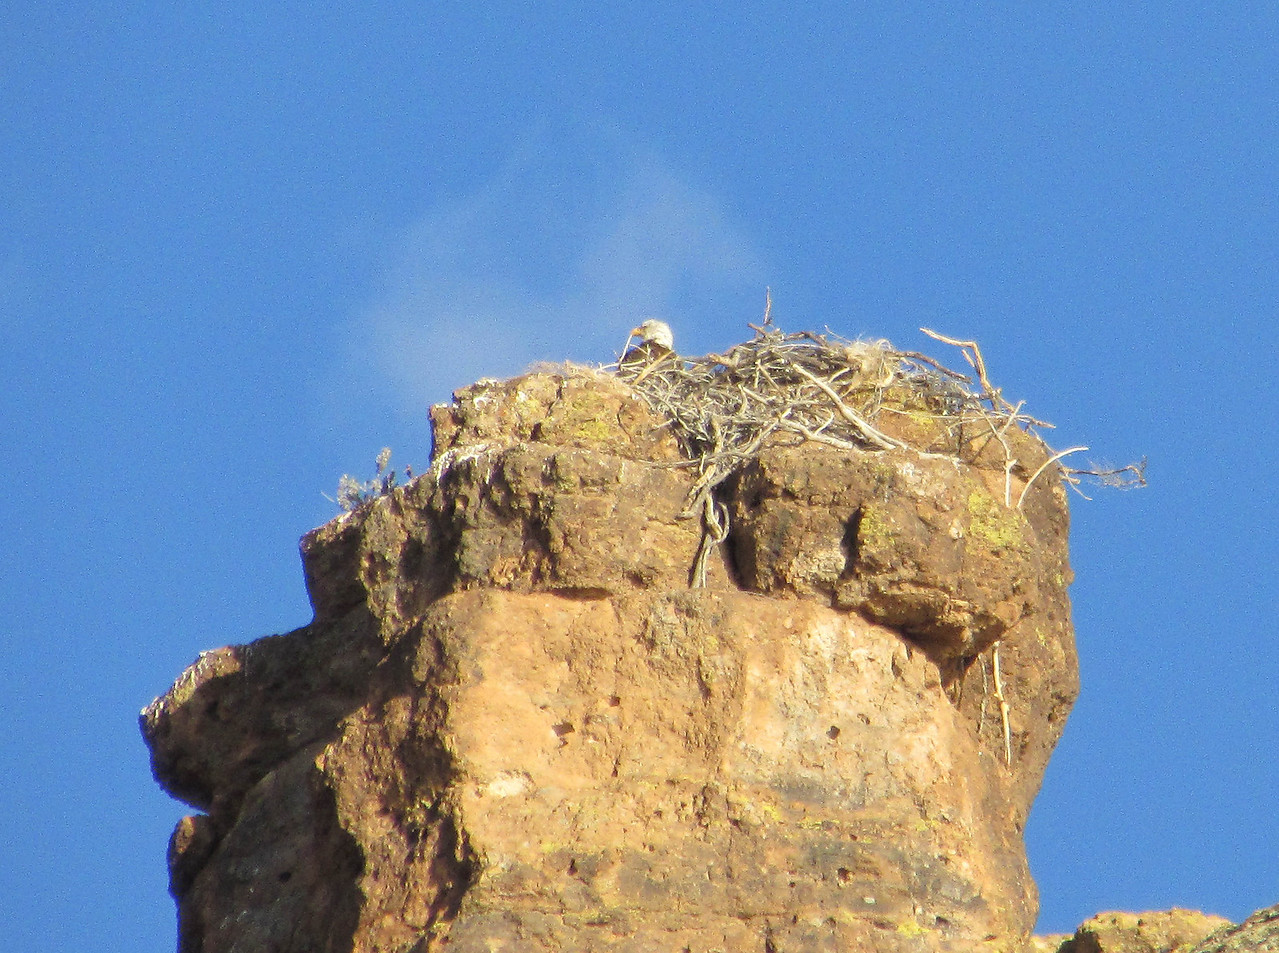 Passengers spotted a bald eagle in flight and tracked him to this nest along the north side of Canyon Lake.  Karen captured the first photo.